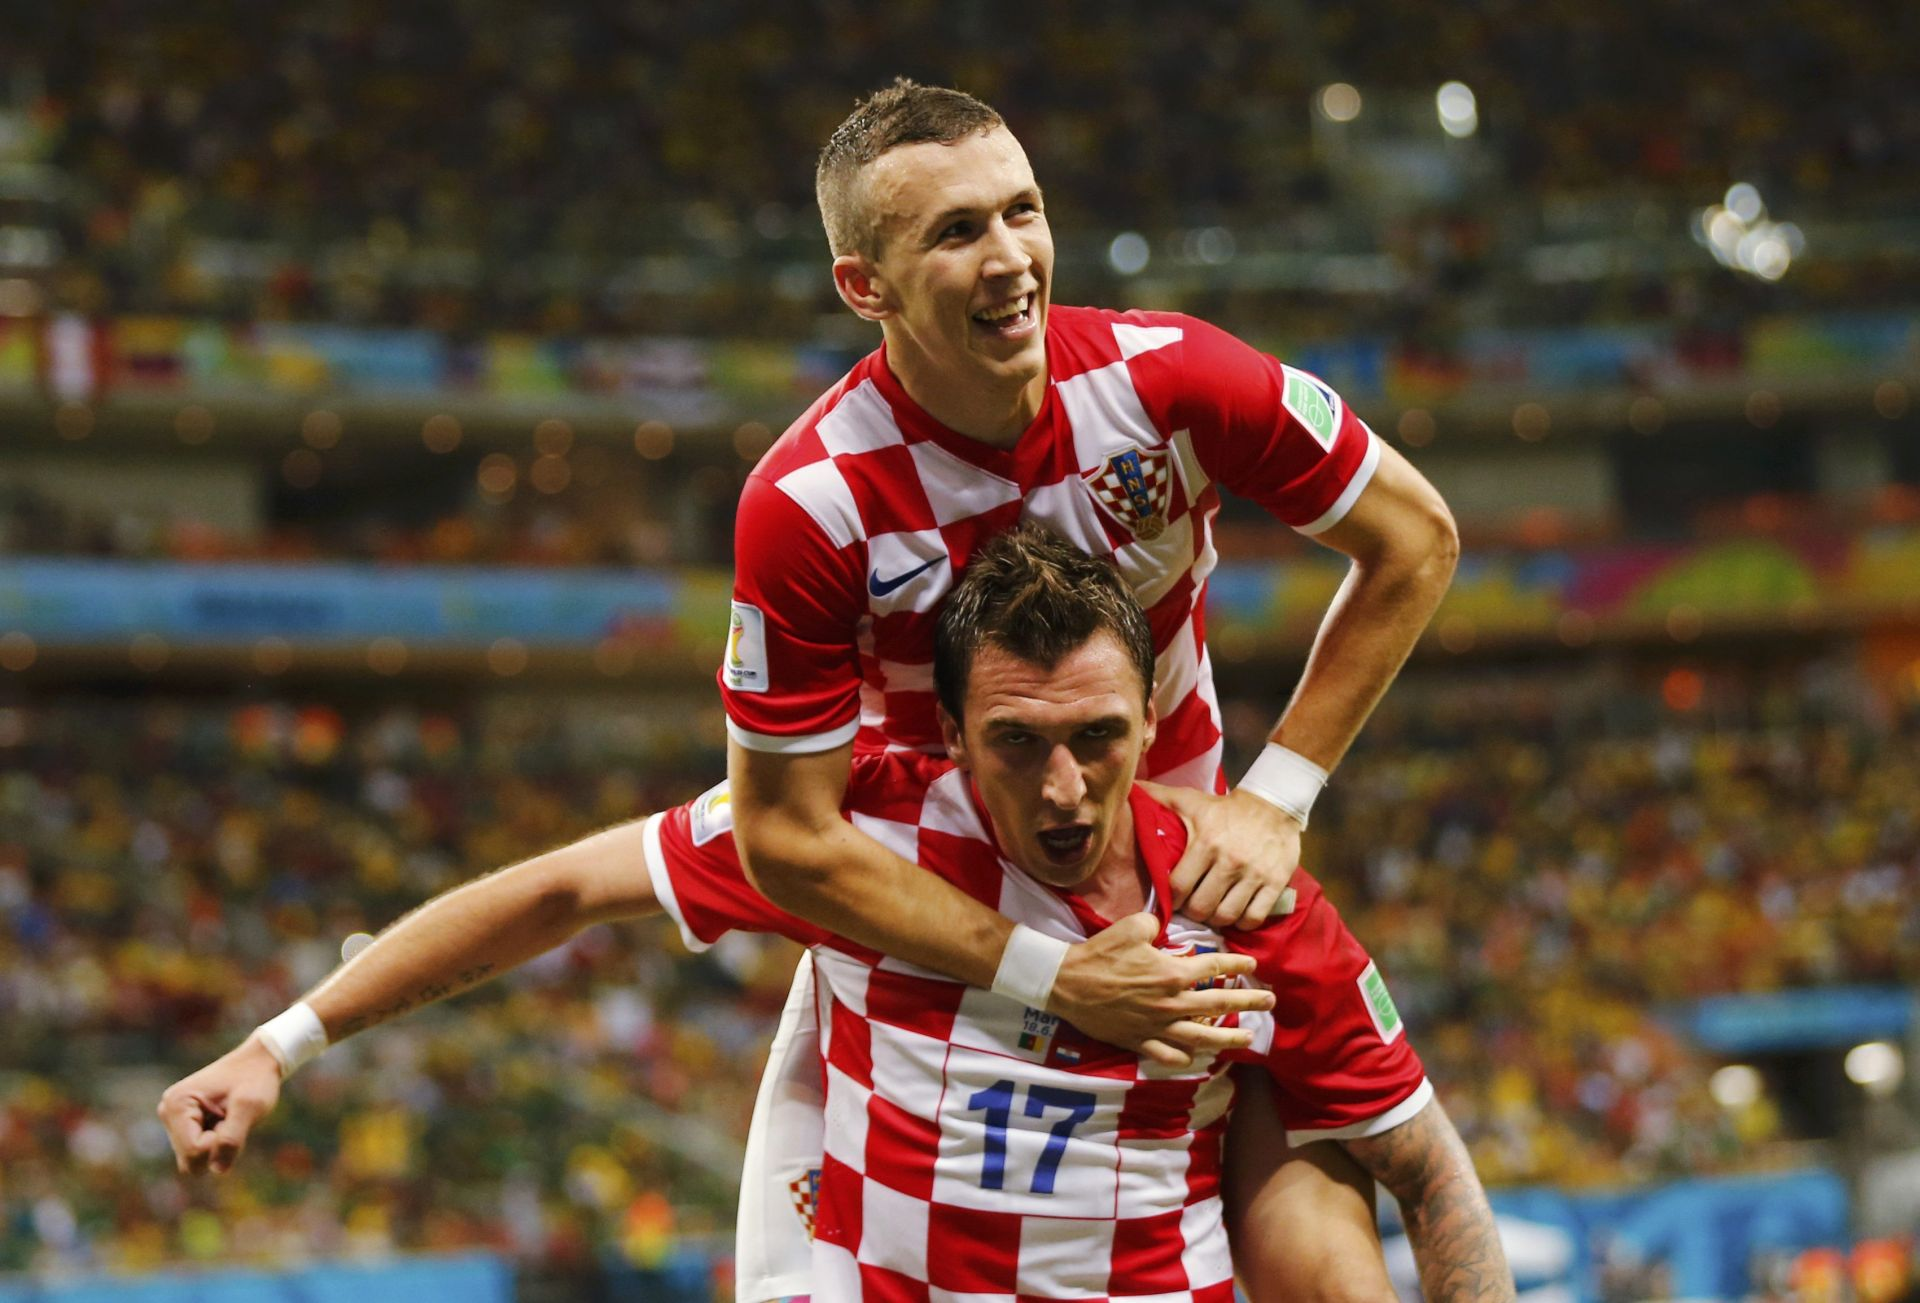 Croatia's Mandzukic celebrates after scoring a goal with teammate Perisic during their 2014 World Cup Group A soccer match against Cameroon at the Amazonia arena in Manaus